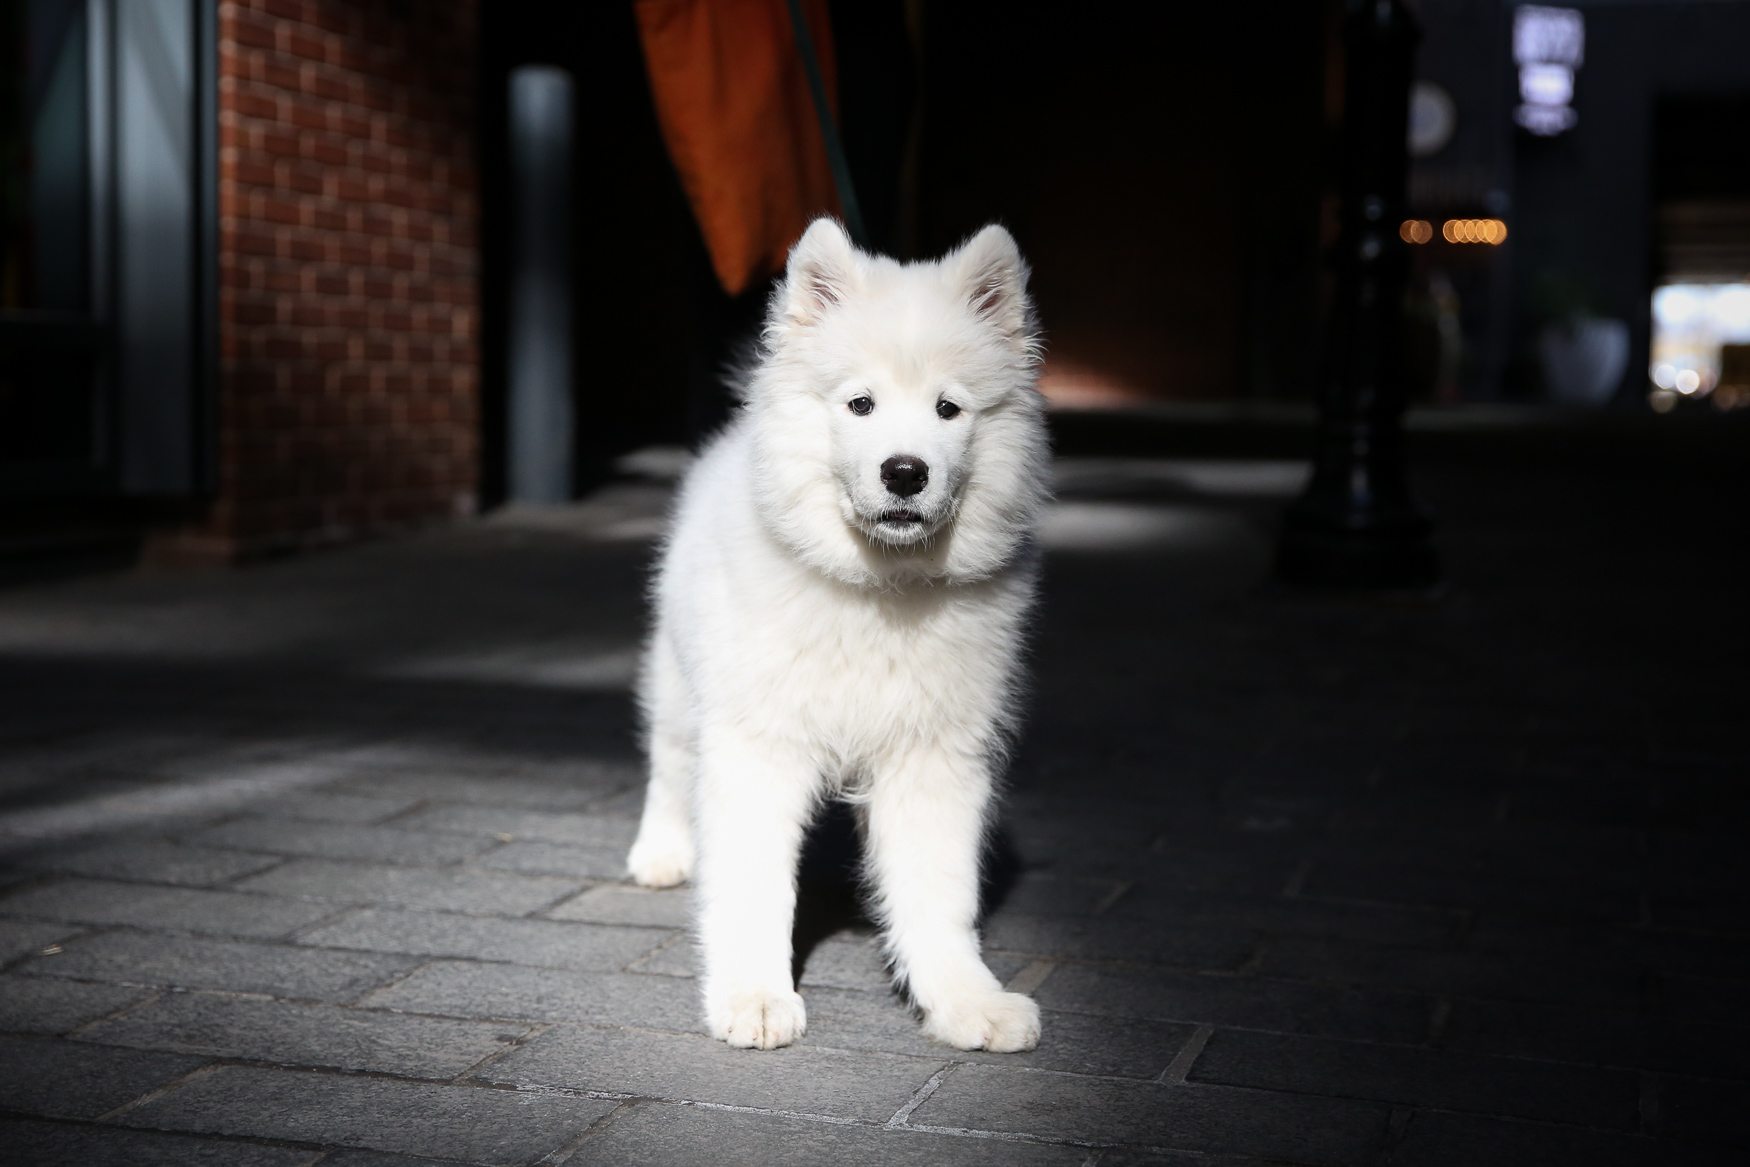 Meet Kasha, a 3.5-month-old Samoyed pup, who just came from Connecticut to live with her family this past December.{ } Her second weekend in D.C., she experienced her first snow. She kept burying her face in it, rolling around and eating it, and blended in almost too well. When she finally came inside, she was soaking wet, but happy as a clam. Kasha loves peanut butter, smelly shoes and the West Wing theme song. She does not like her gentle lead collar and that she's still too young to go to dog parks.If you're interested in having your pup featured, drop us a line at aandrade@dcrefined.com (Image: Amanda Andrade-Rhoades/DC Refined)